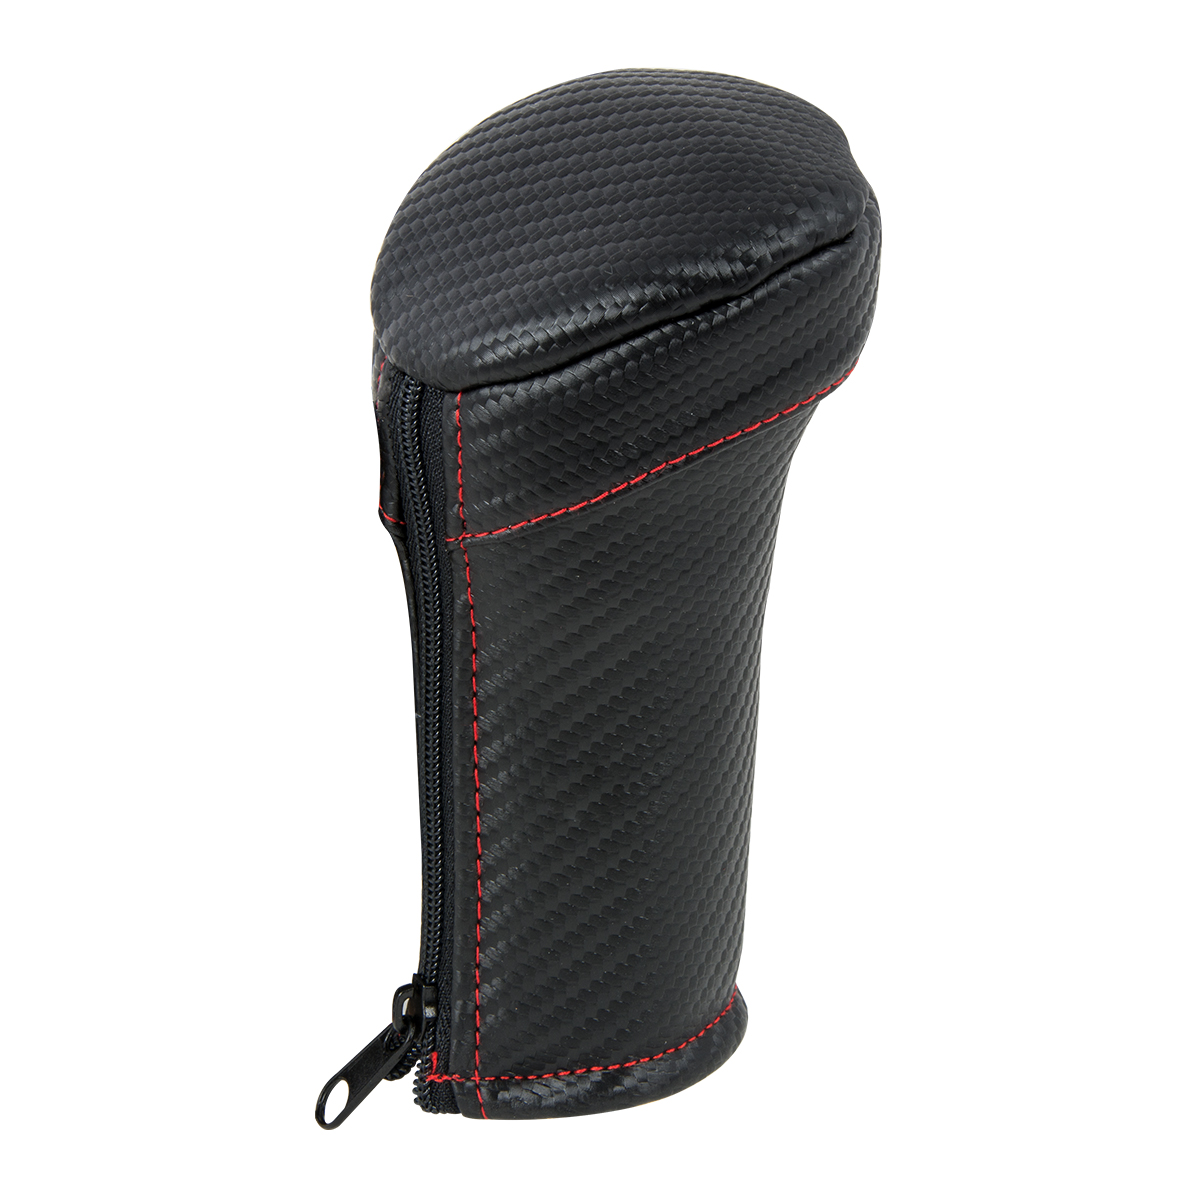 99869 Matte Carbon Fiber Gear Shift Knob Cover w/ Red Stitching